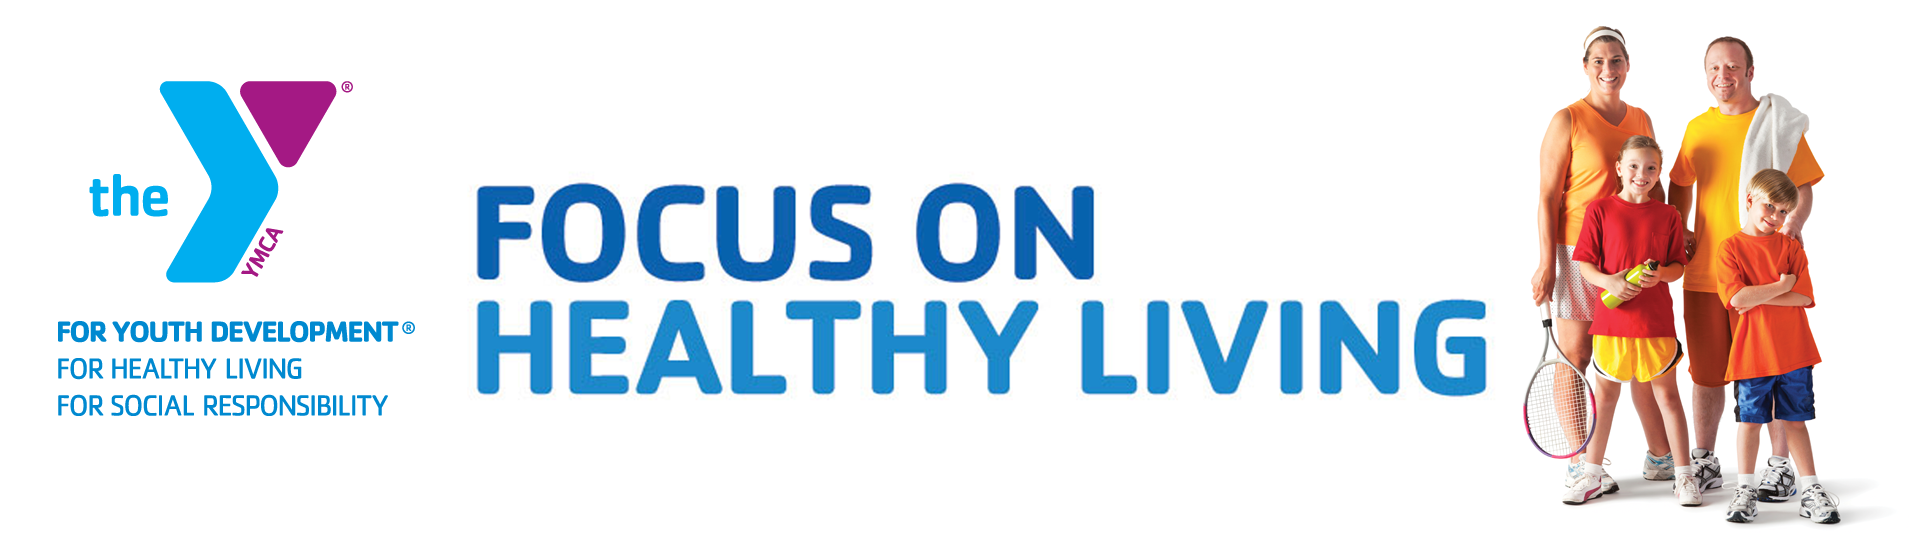 focus_on_healthy_living